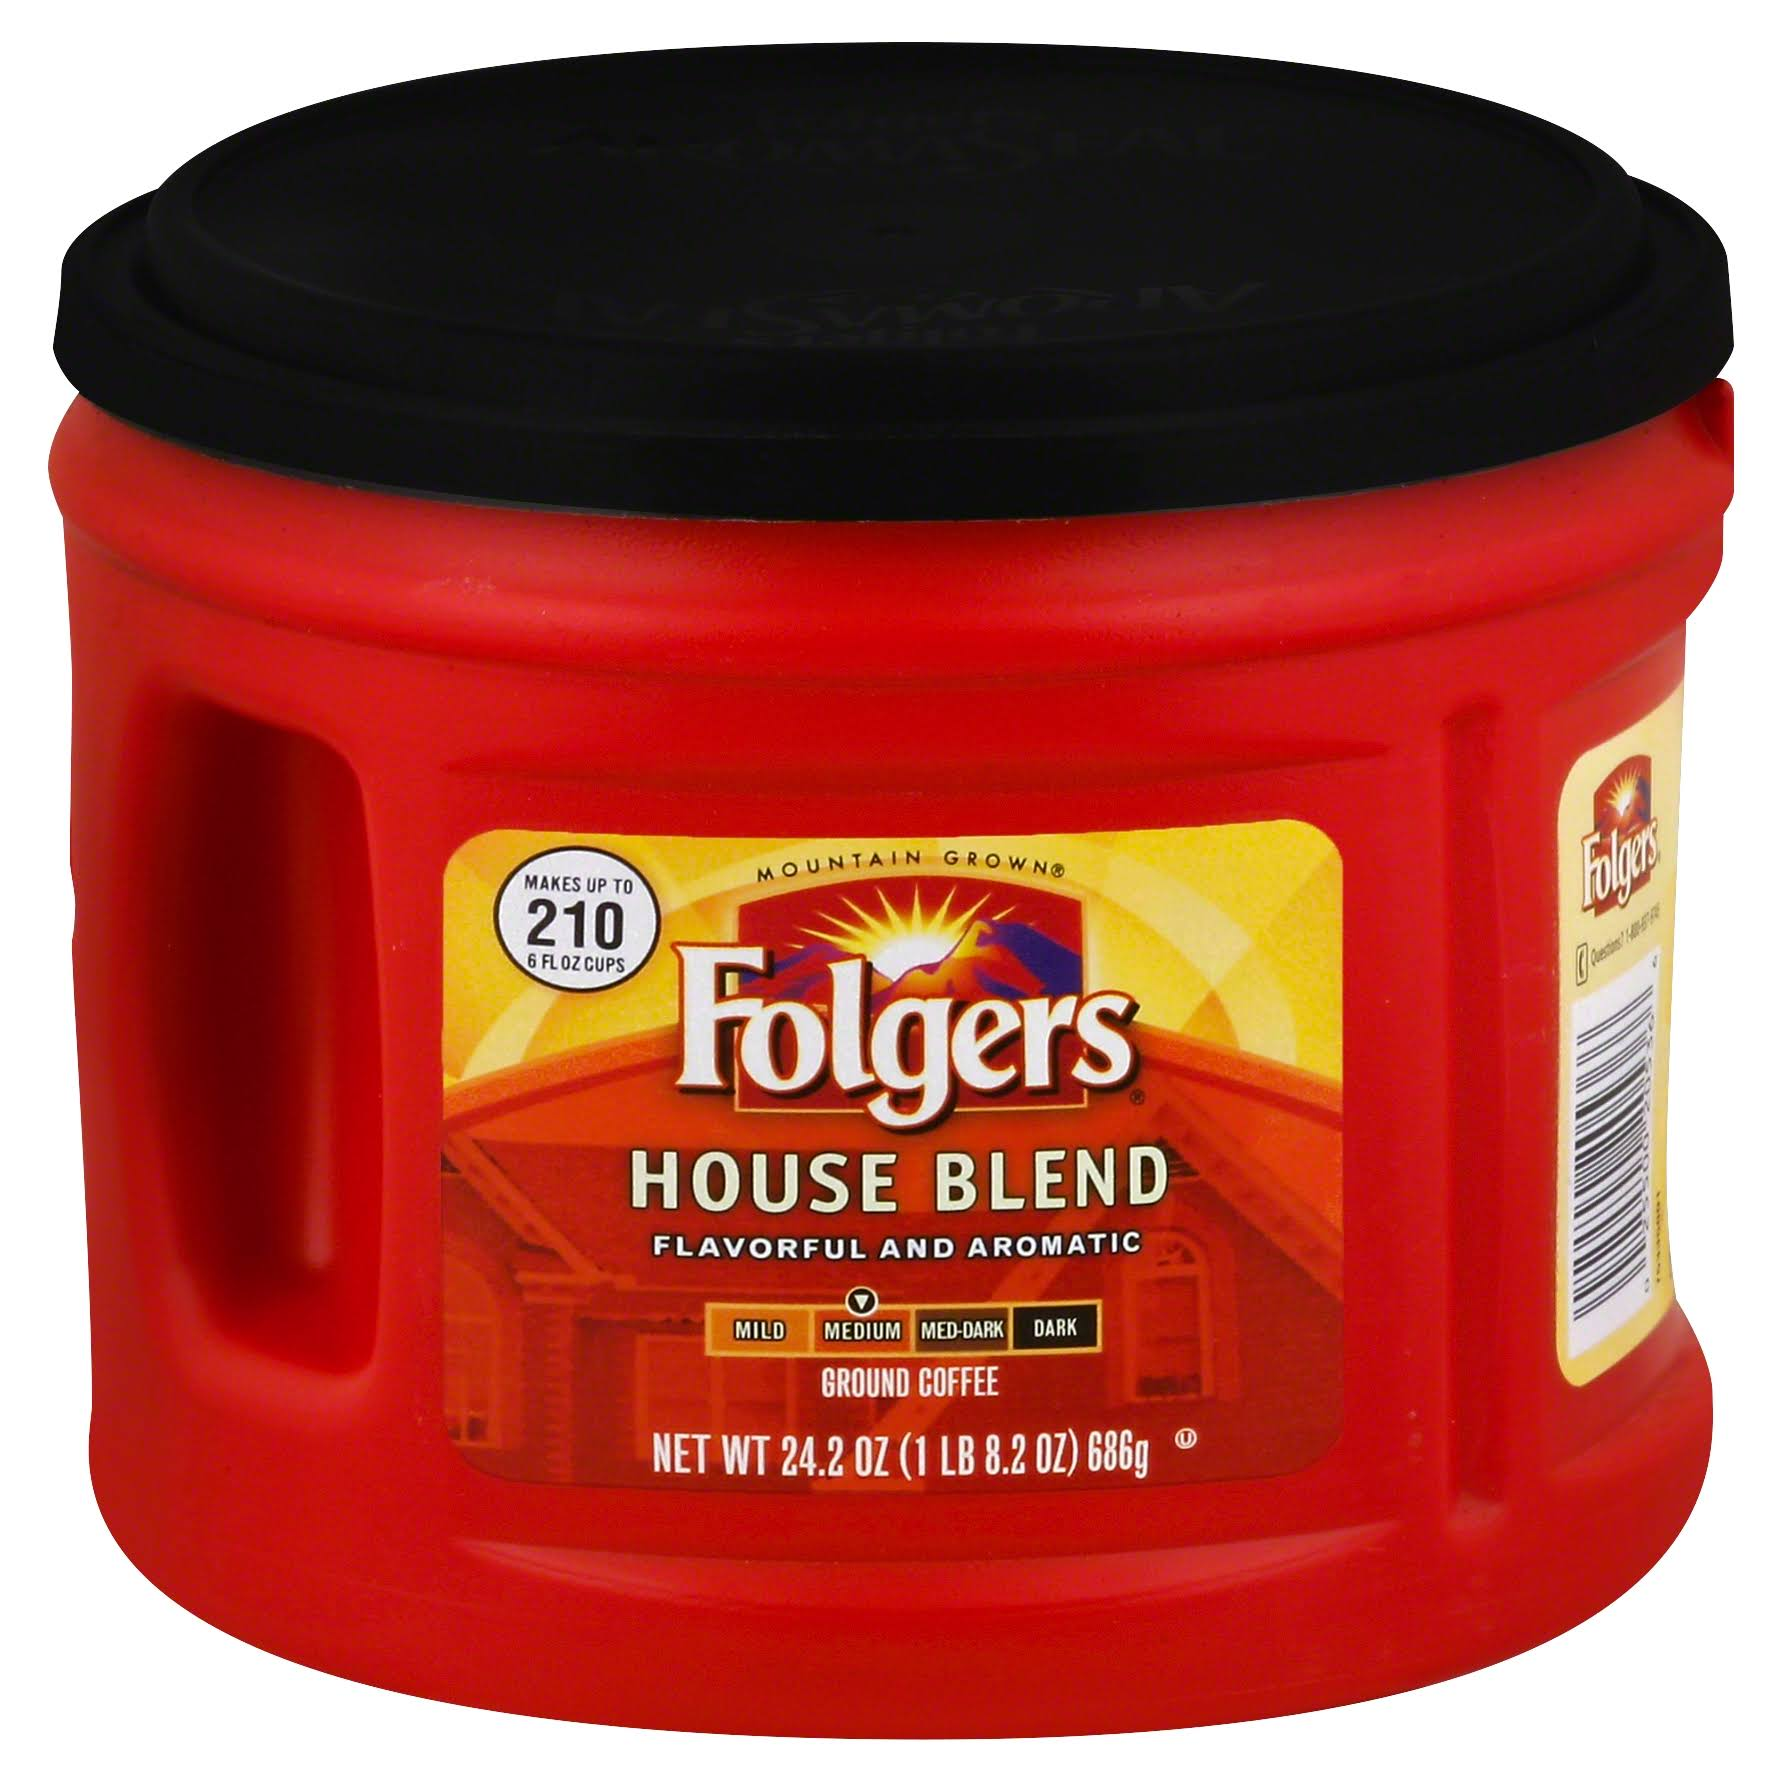 Folgers Medium Ground Coffee - House Blend, 24.2oz